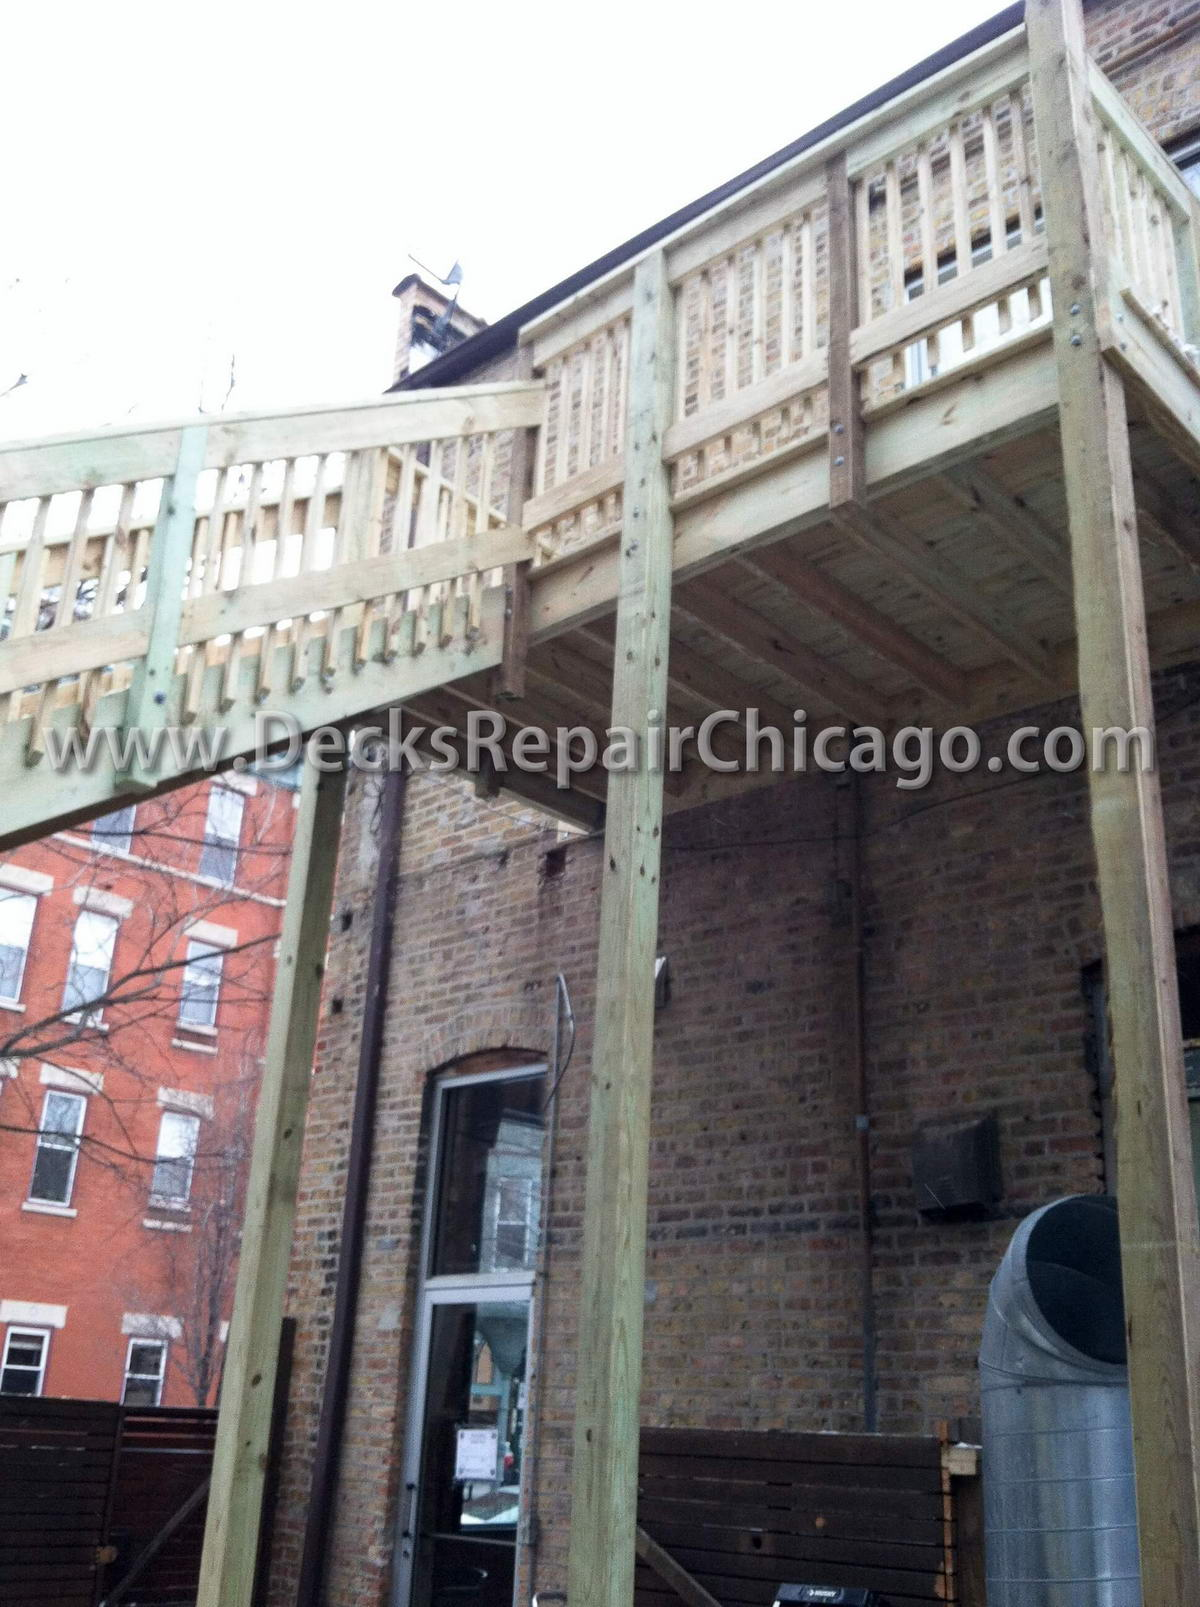 decks-repair-chicago-buff-construction-19_resize.jpg